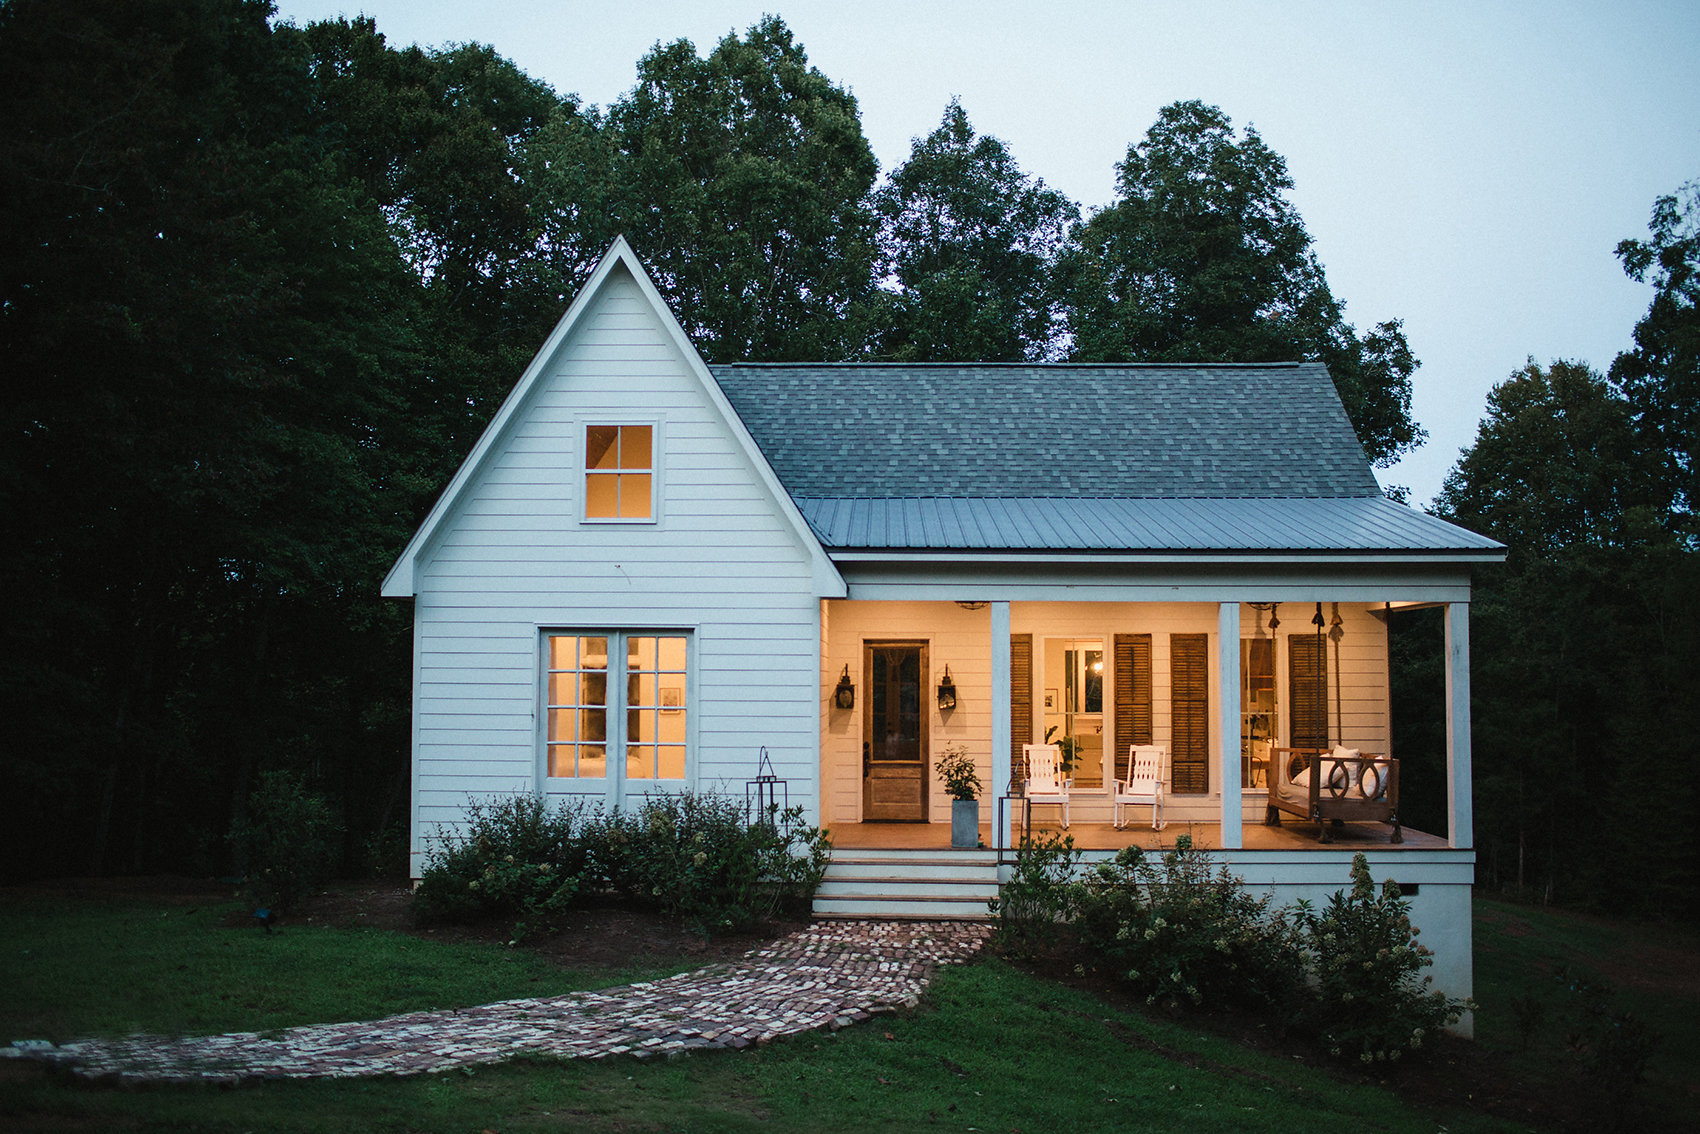 Narrow Farmhouse Exterior A Mississippi Home That Gave New Life To An Old Farmhouse